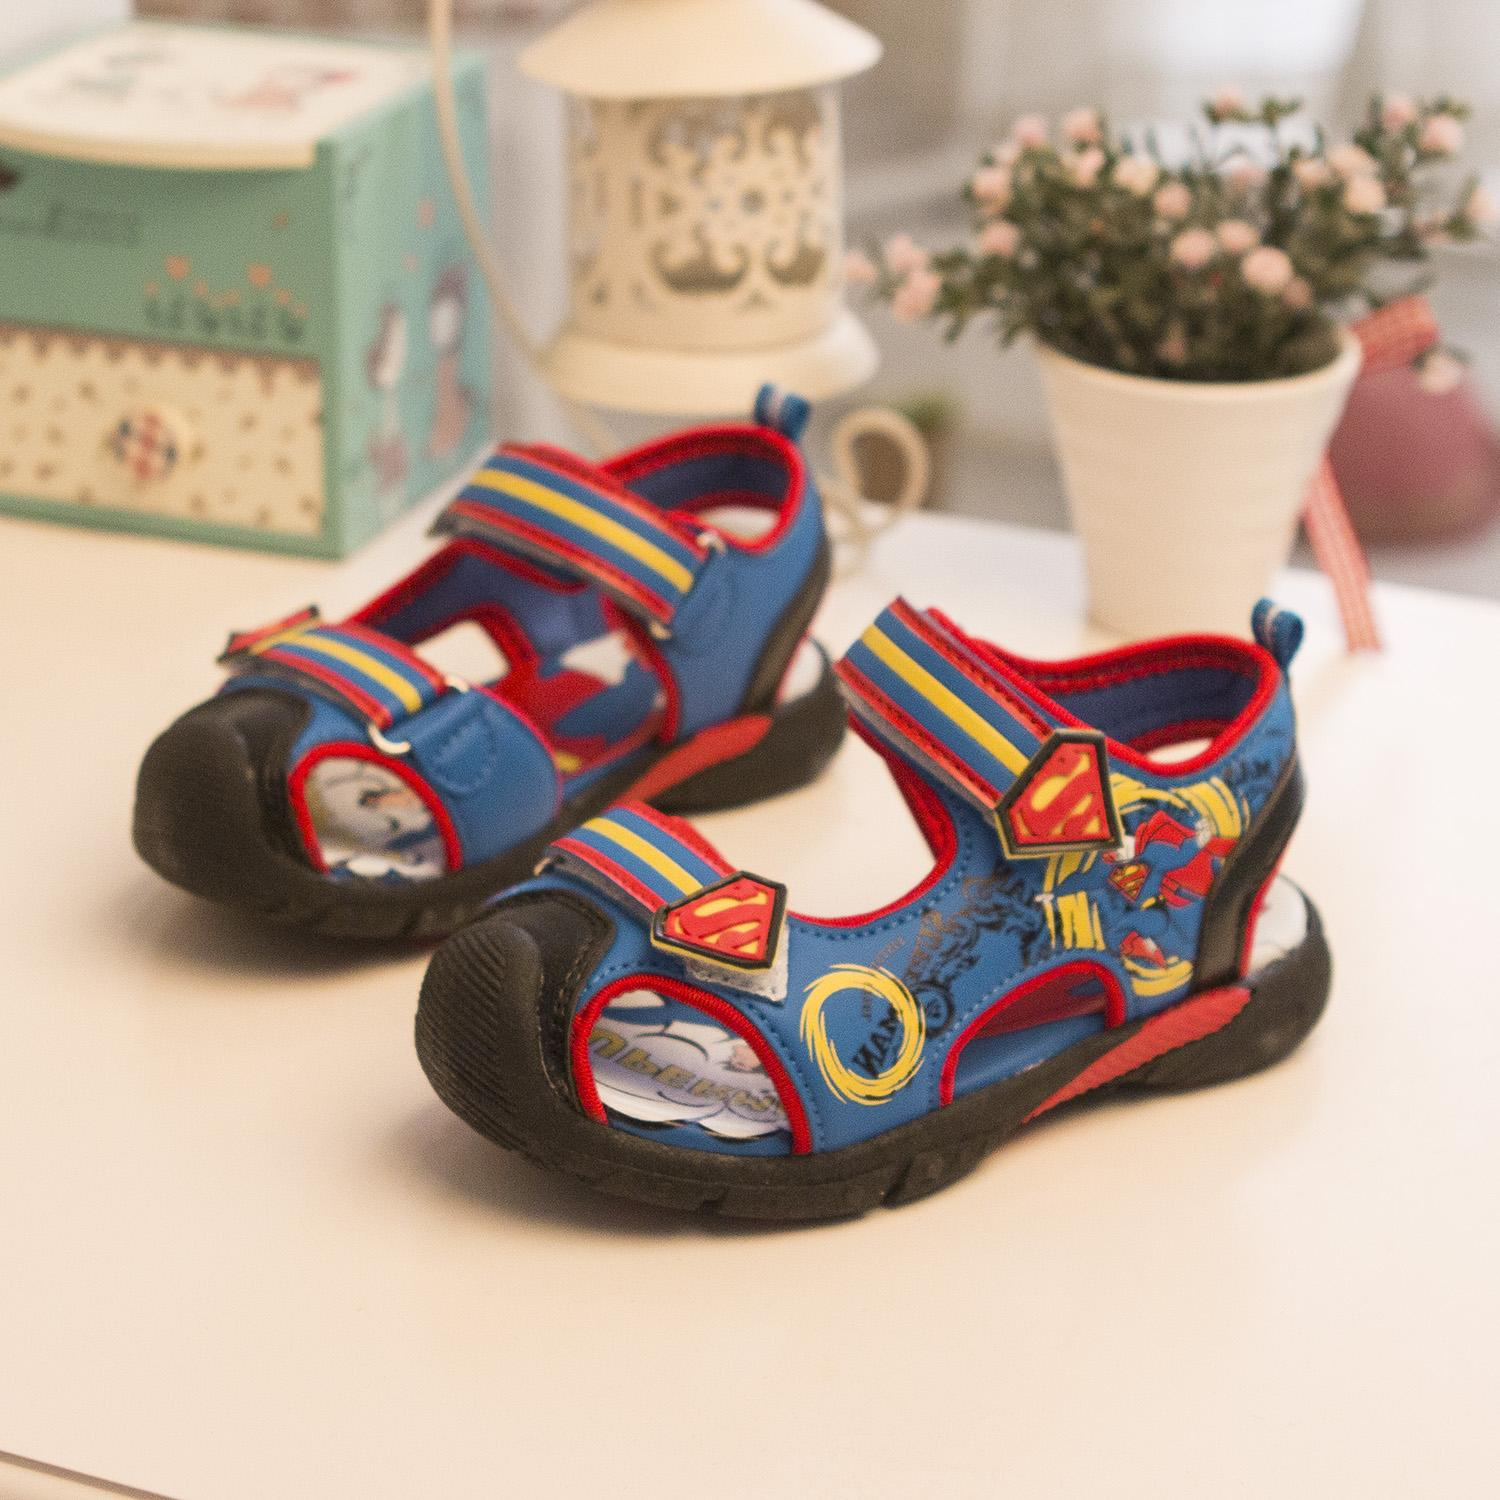 Cute Closed Toe Sandals Promotion-Shop for Promotional